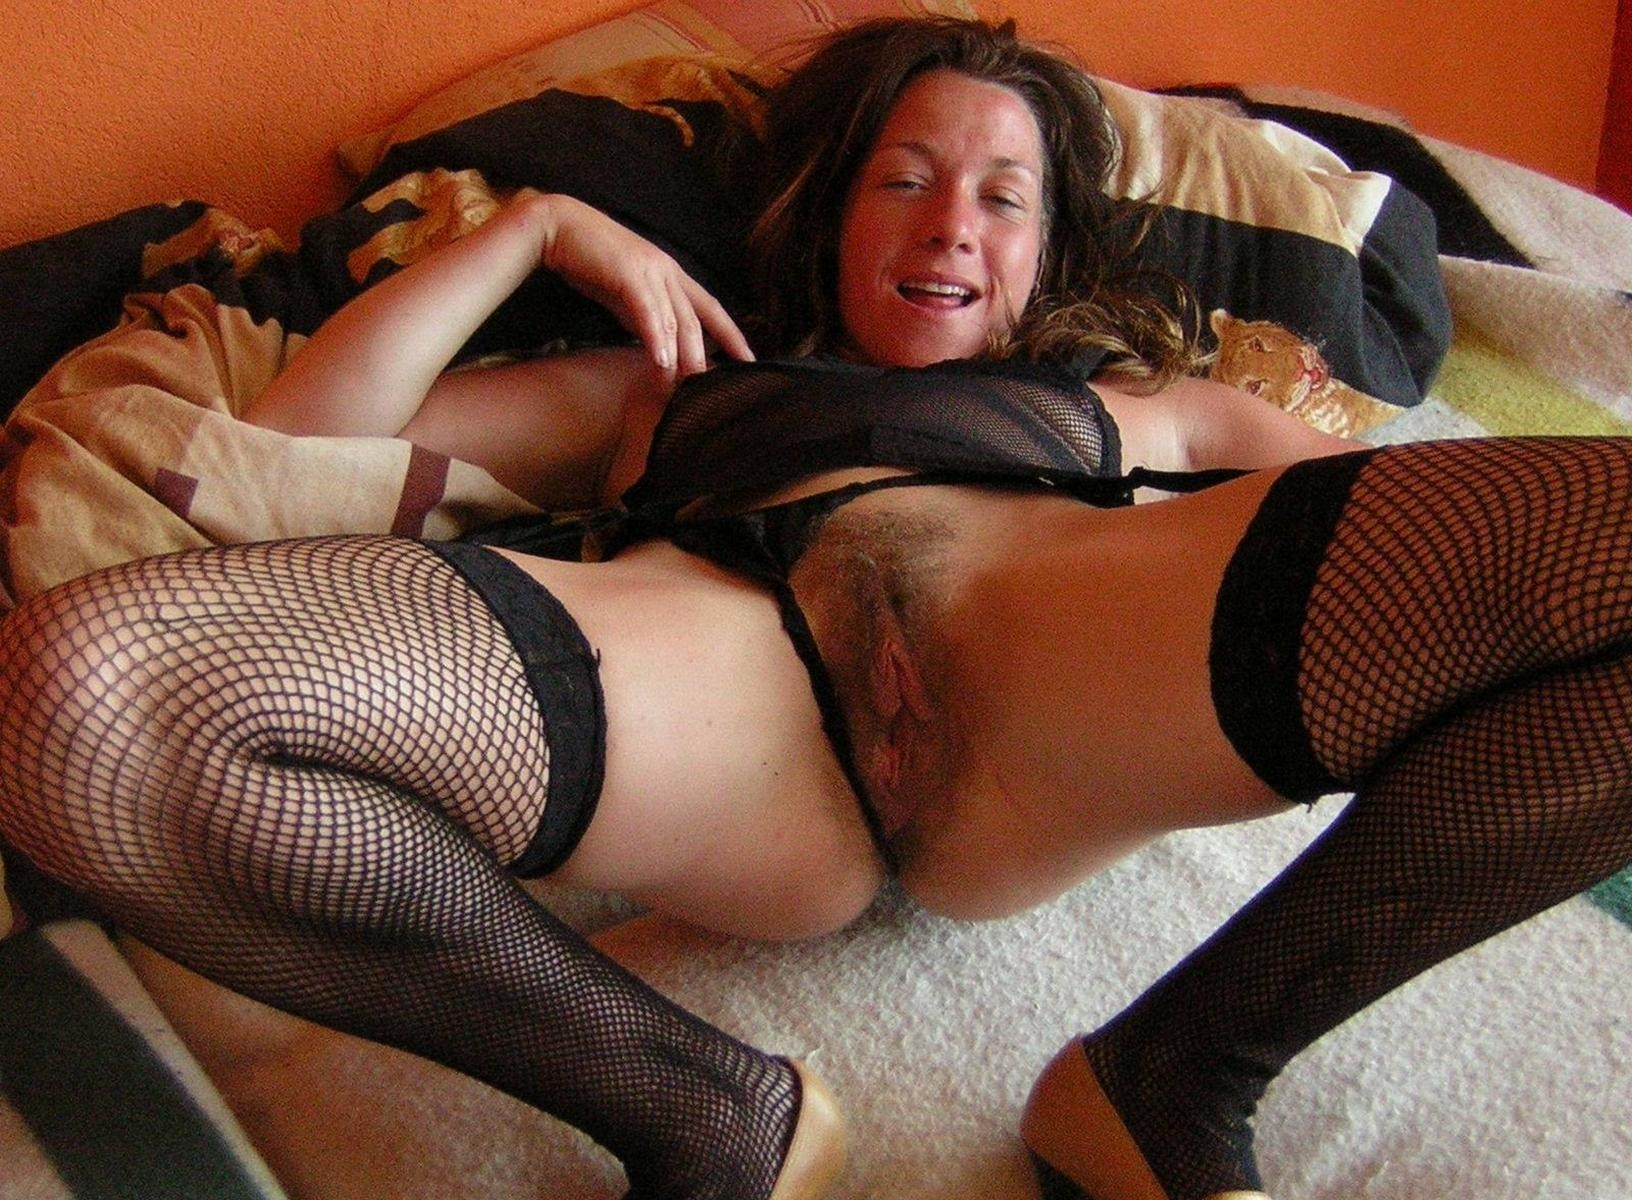 Hairy mature pussy spreading why look